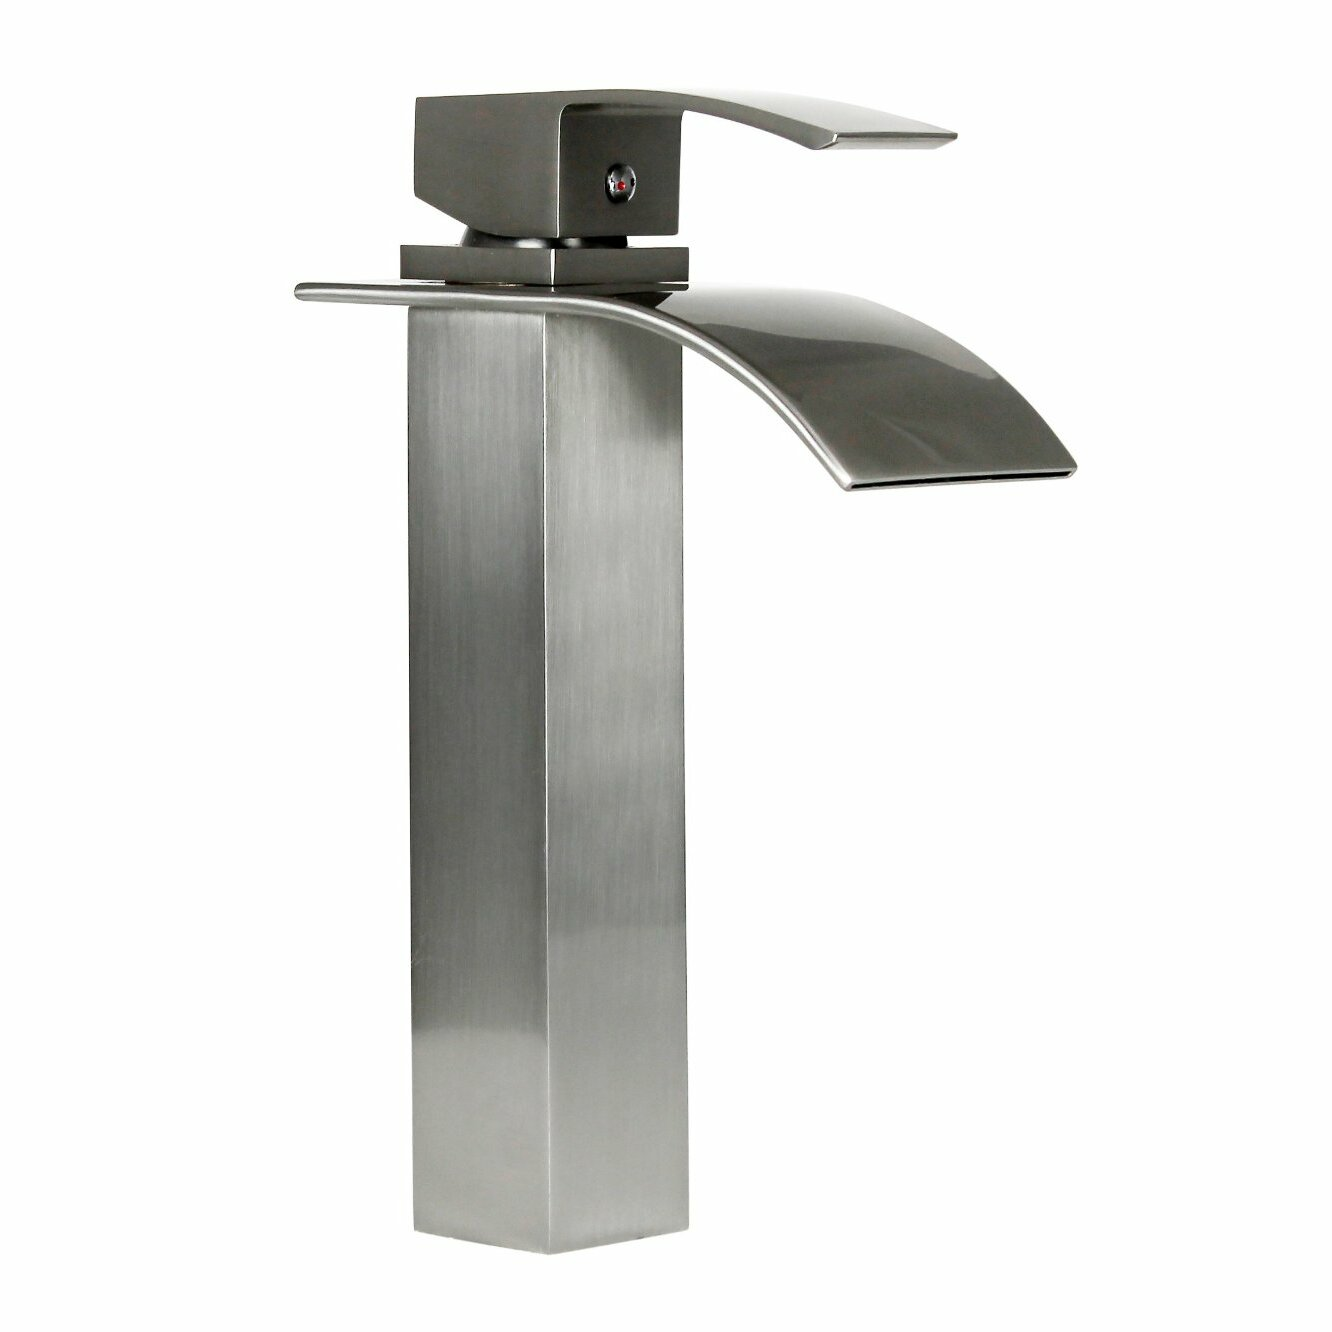 Dyconn Faucet Wye Modern Bathroom Vessel Sink Bathroom Faucet U0026 Reviews |  Wayfair